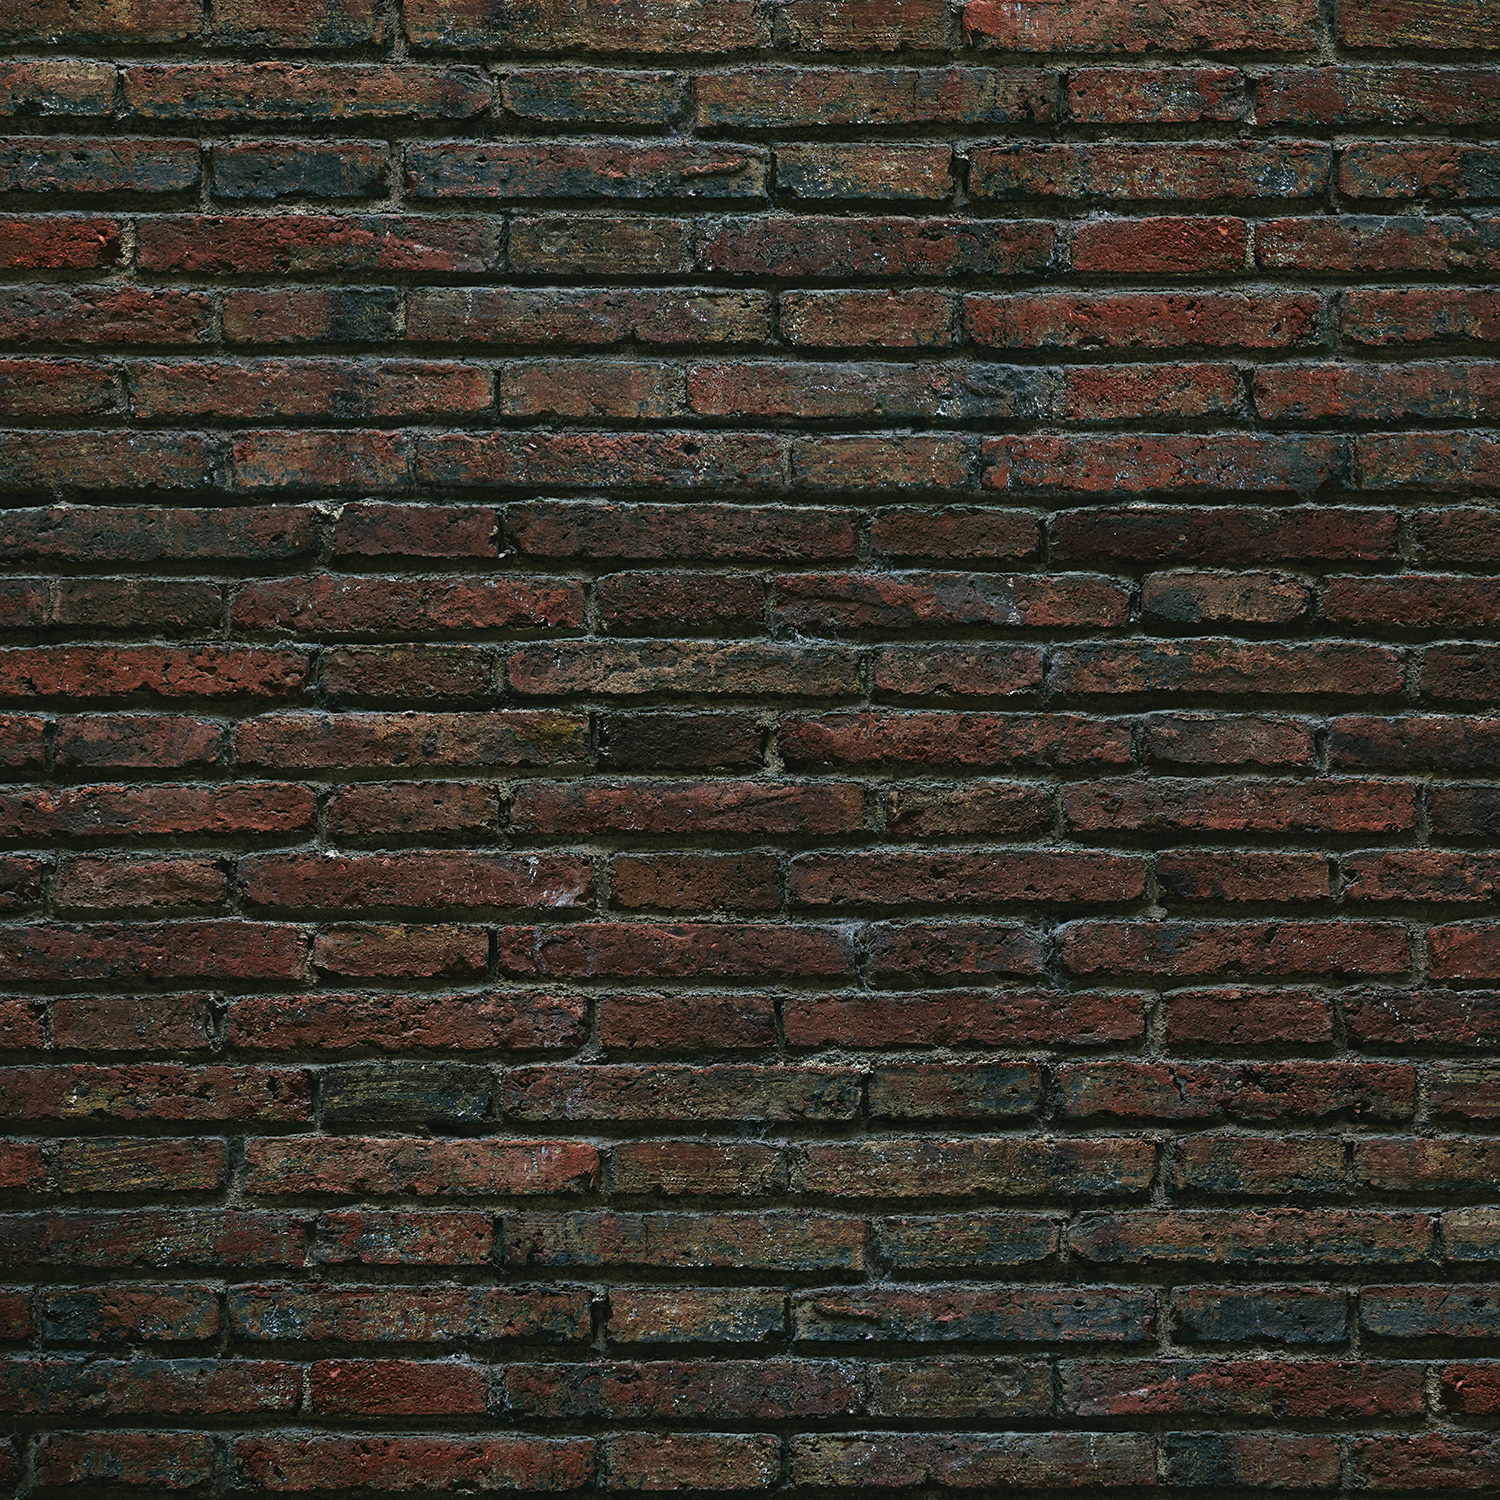 Grungy Brick Wall Matte Vinyl Backdrop (3.5' x 3.5') - Multi-Color